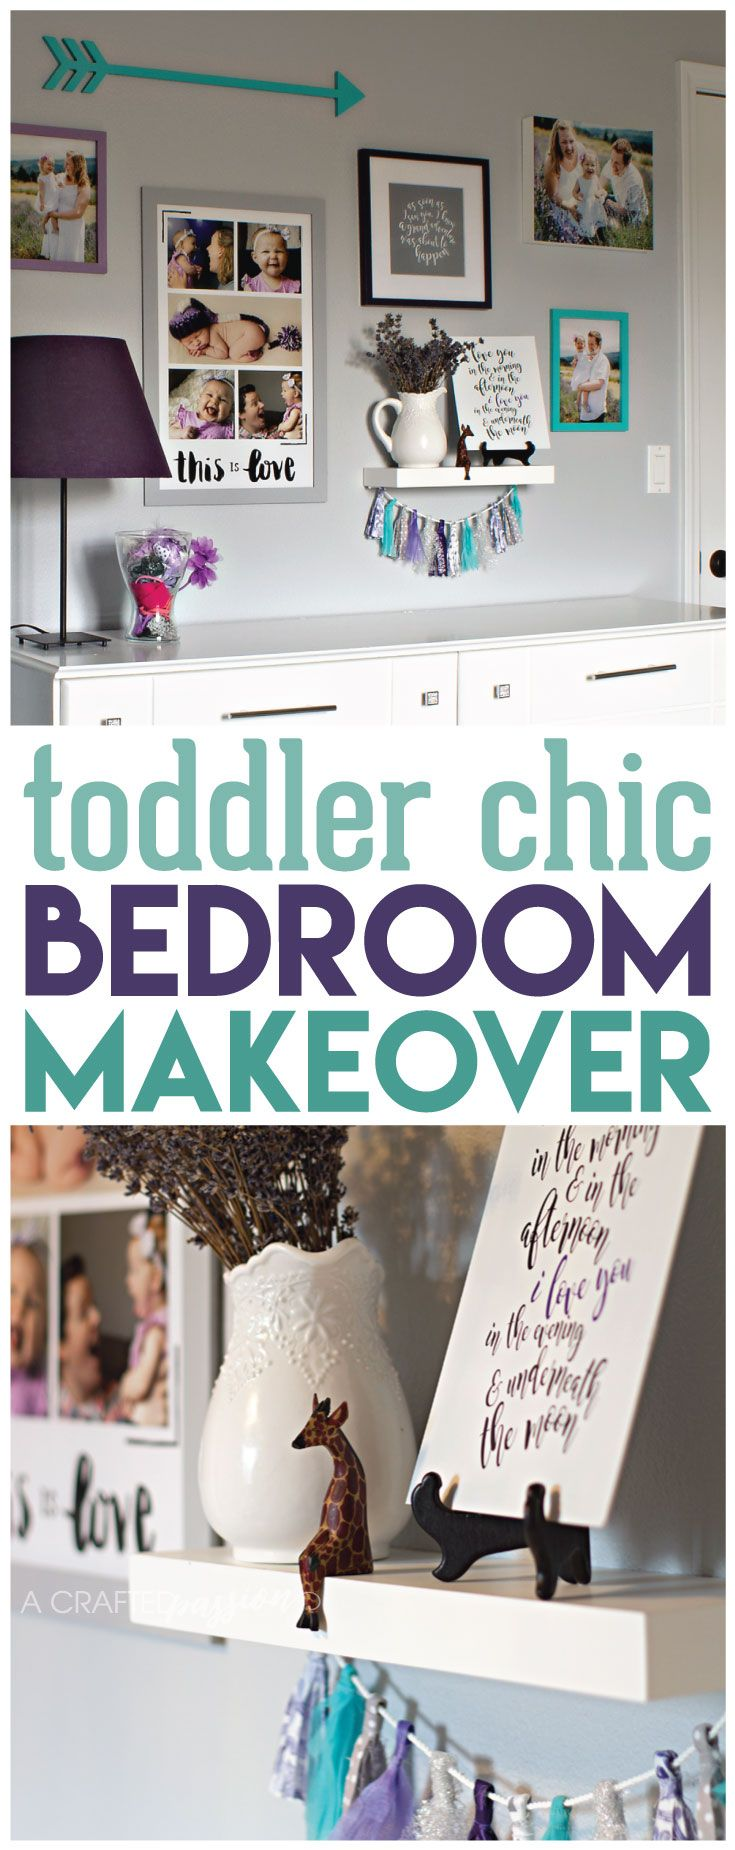 a toddler chic bedroom makeover filled with many diy decor ideas in a montessori inspired - Childs Bedroom Ideas